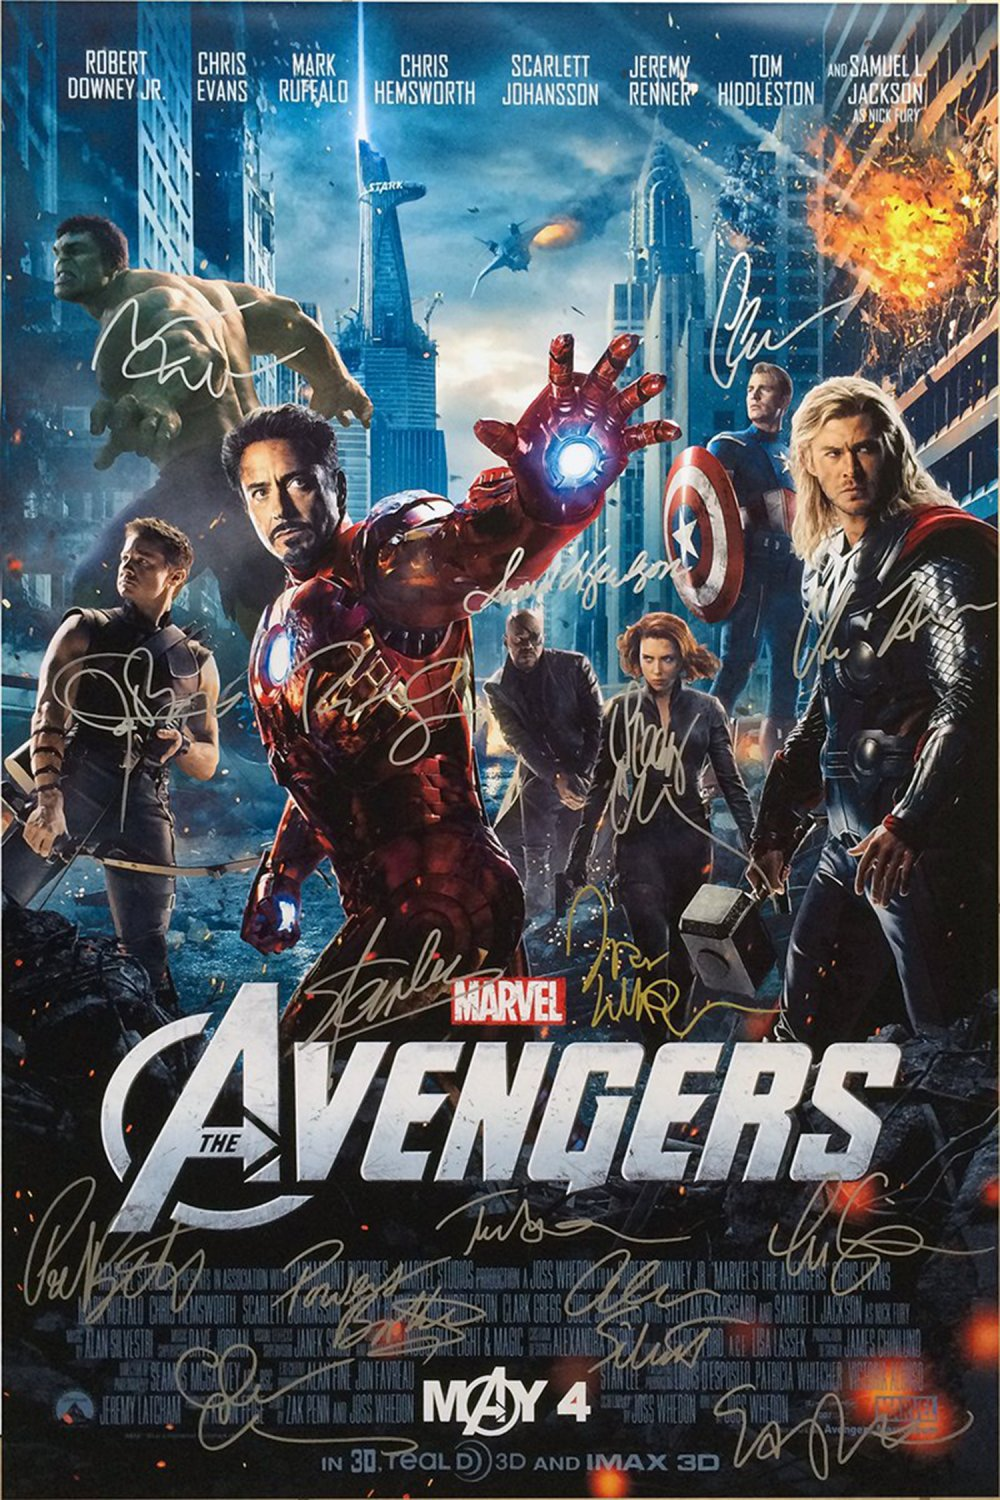 Signed AVENGERS Movie Poster by 16 members of the Cast